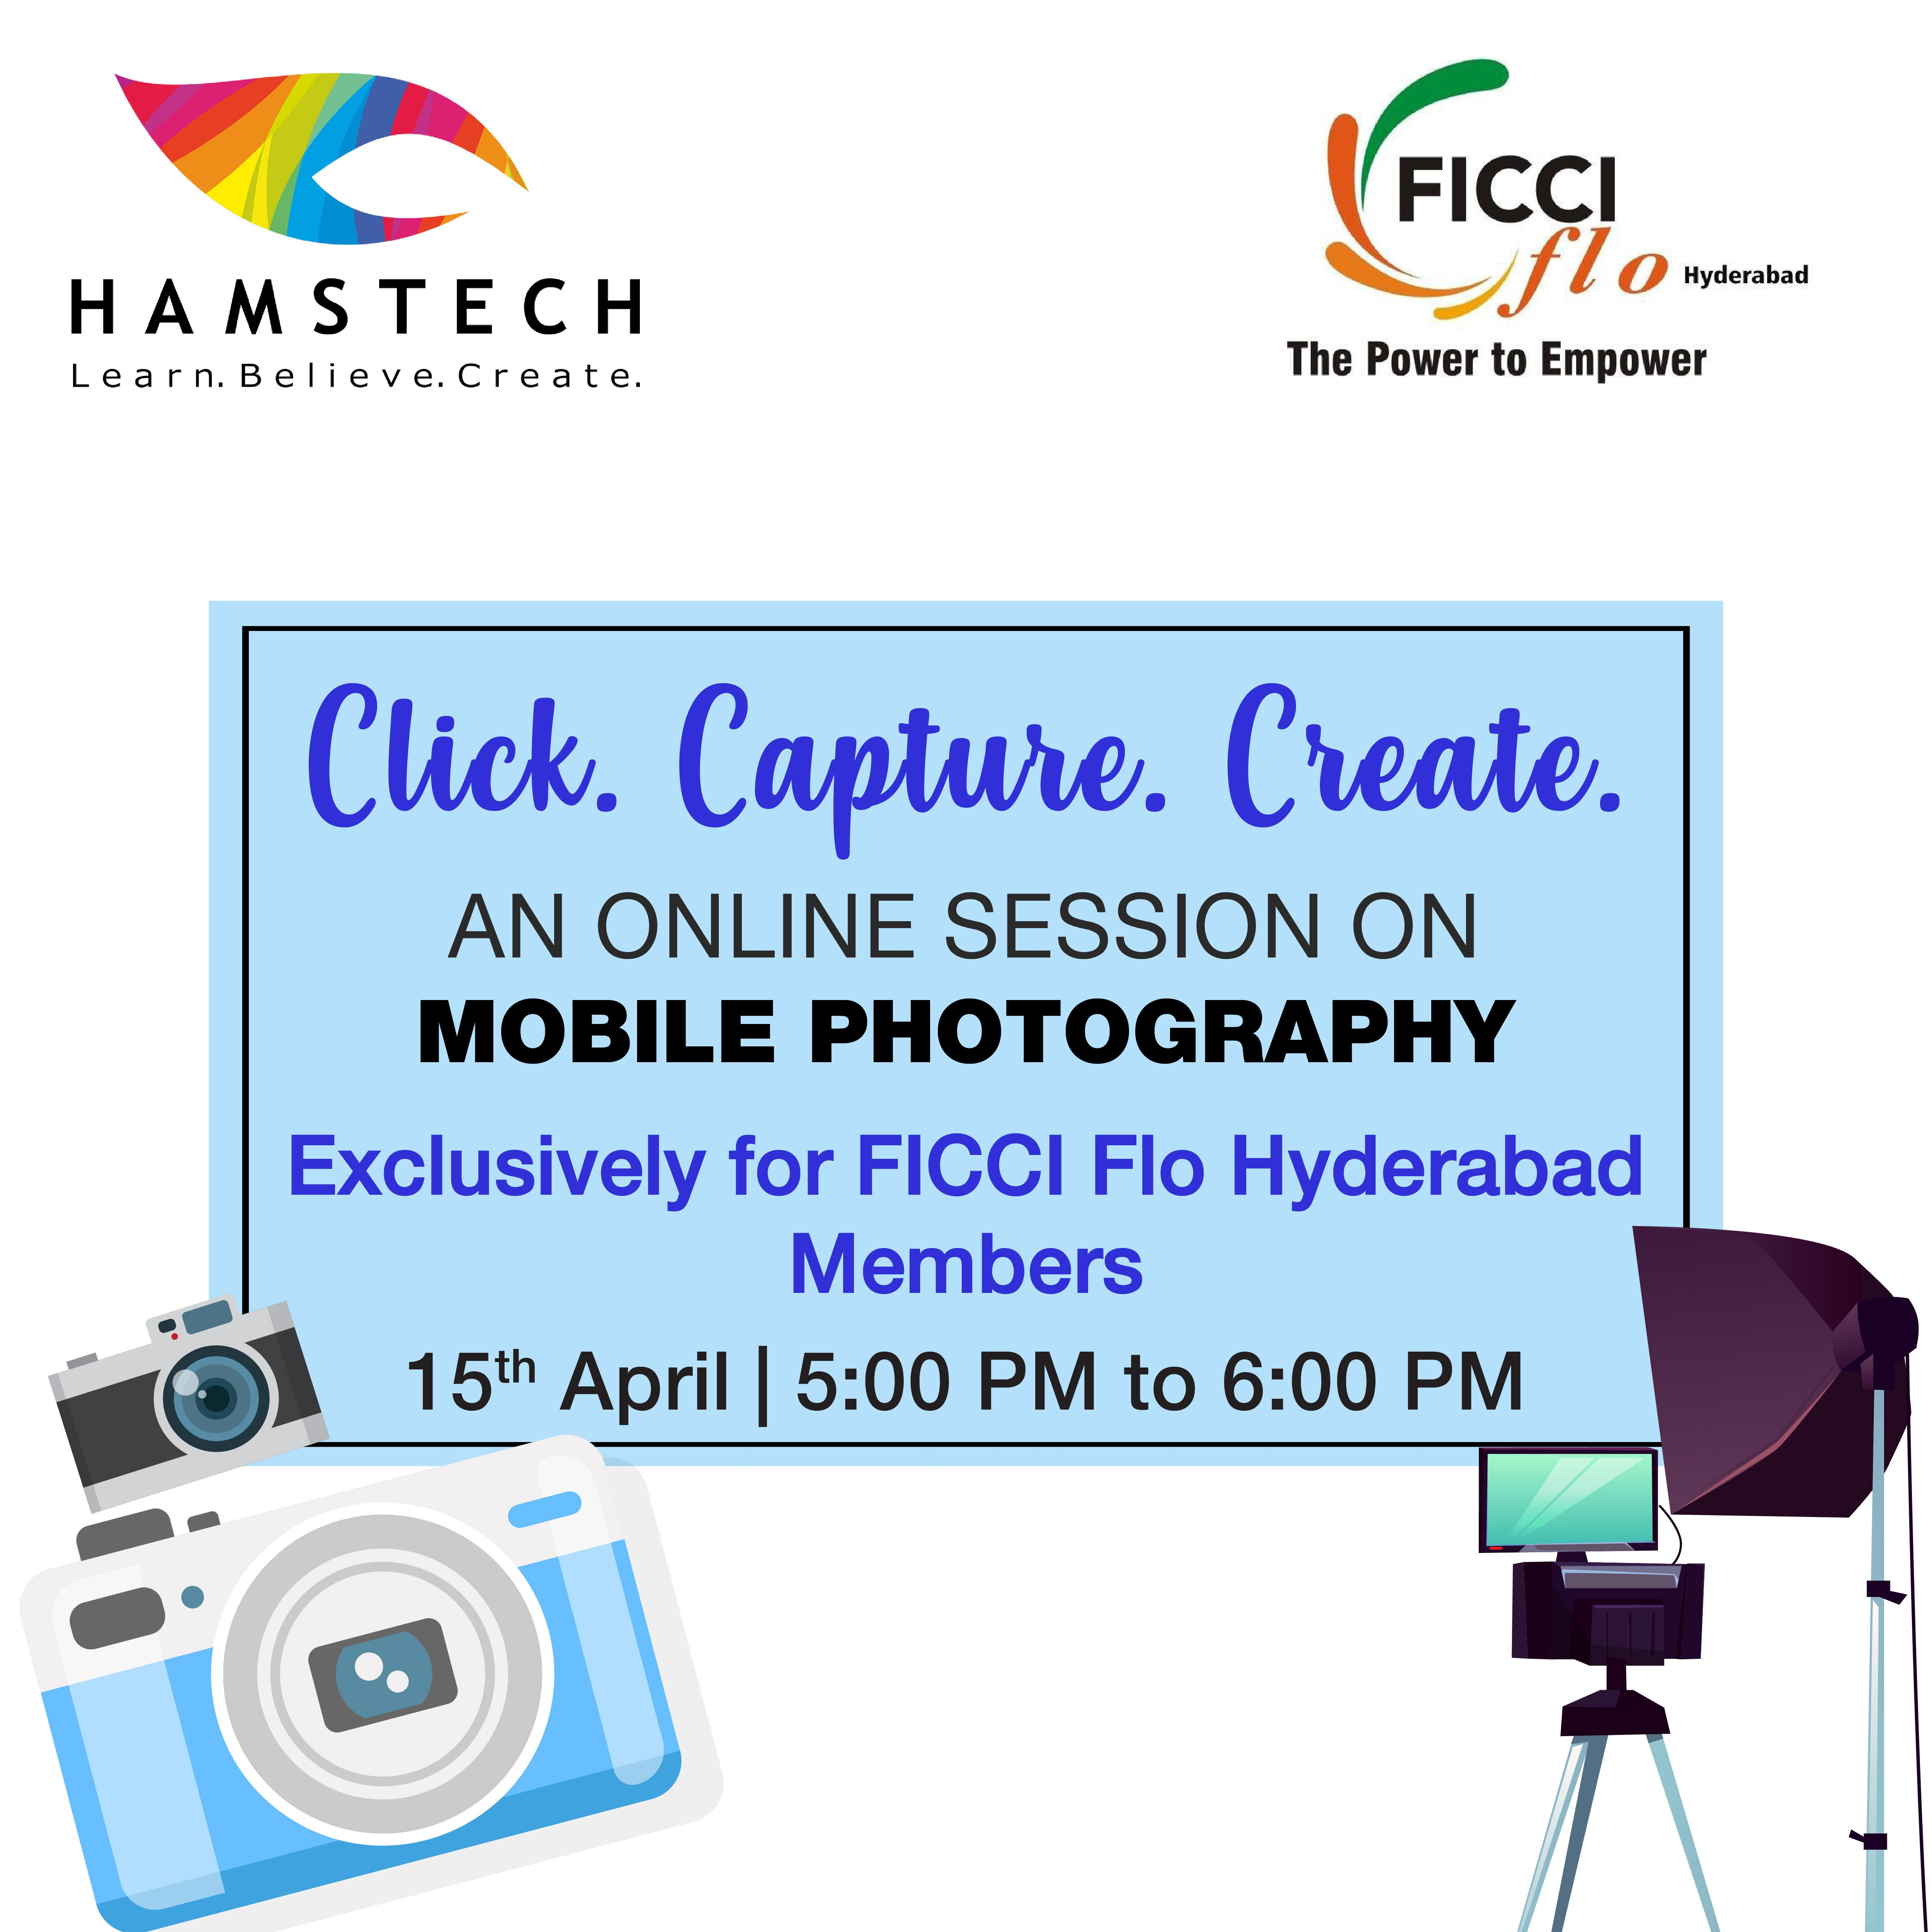 Join Hamstech S Exclusive Mobile Photography Session For Ficci Flo Hyderabad Members Hamstech Brings An In 2020 Mobile Photography College Design Photography Courses